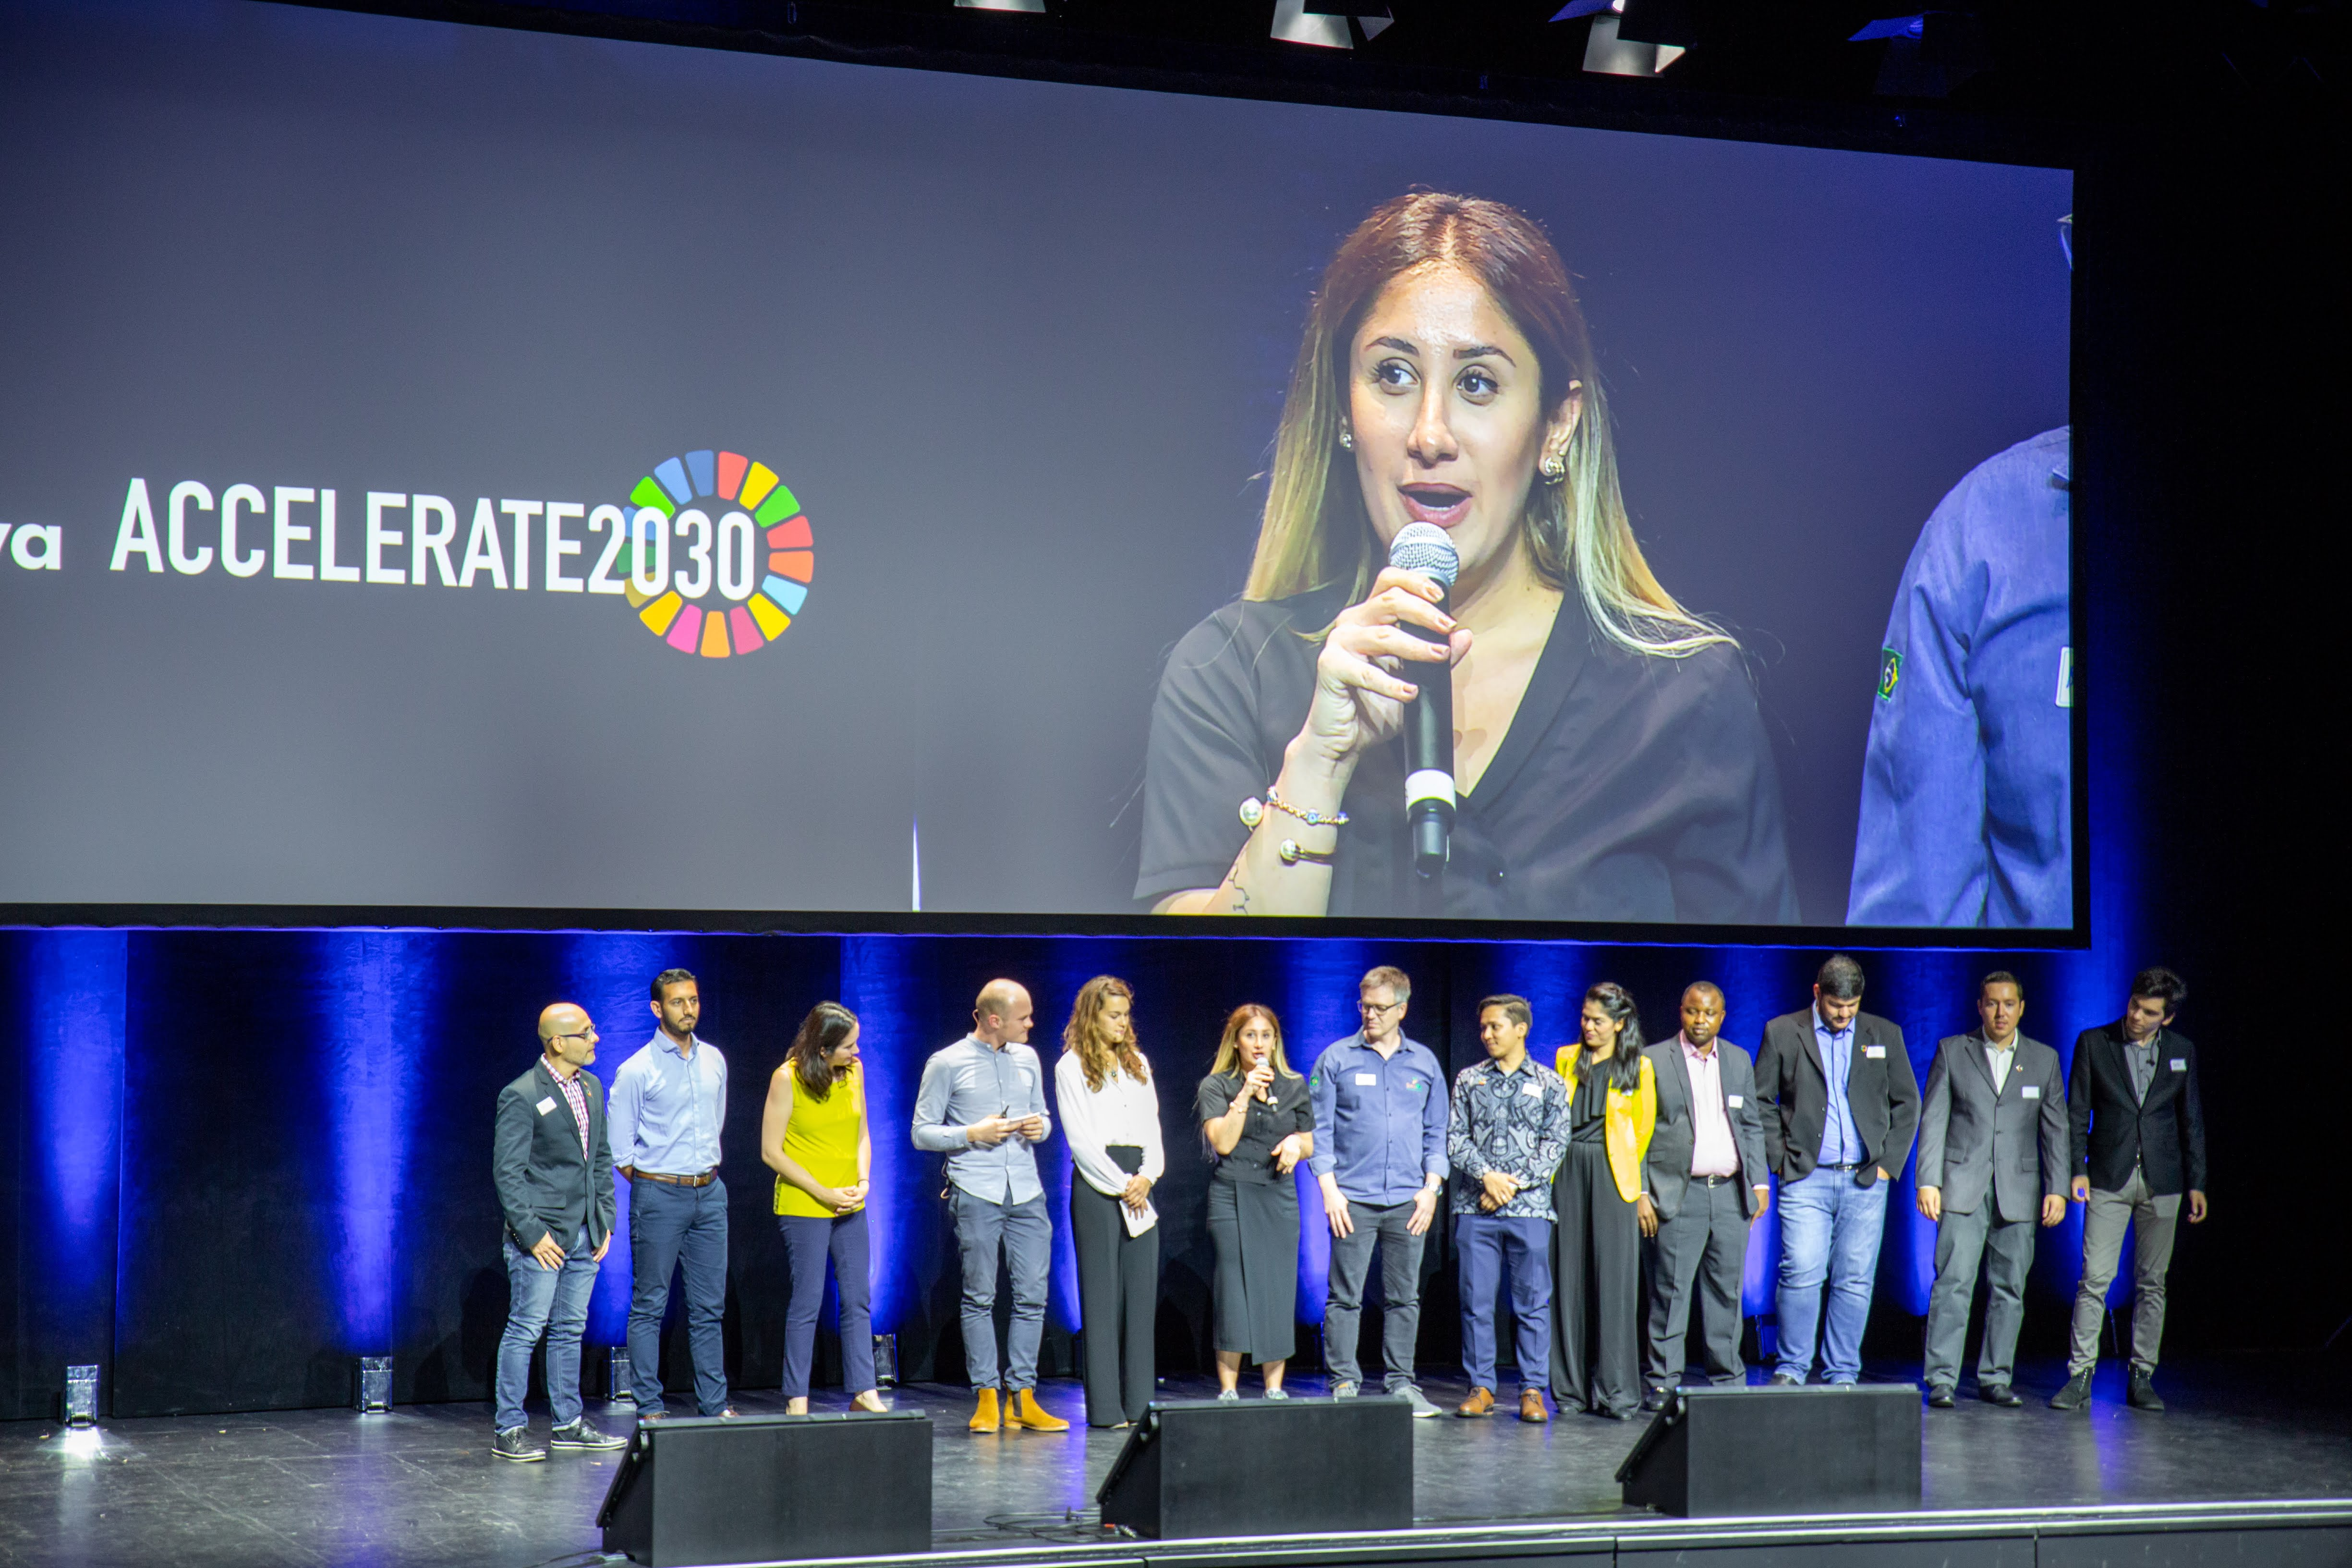 Accelerate2030 entrepreneurs in Factory17